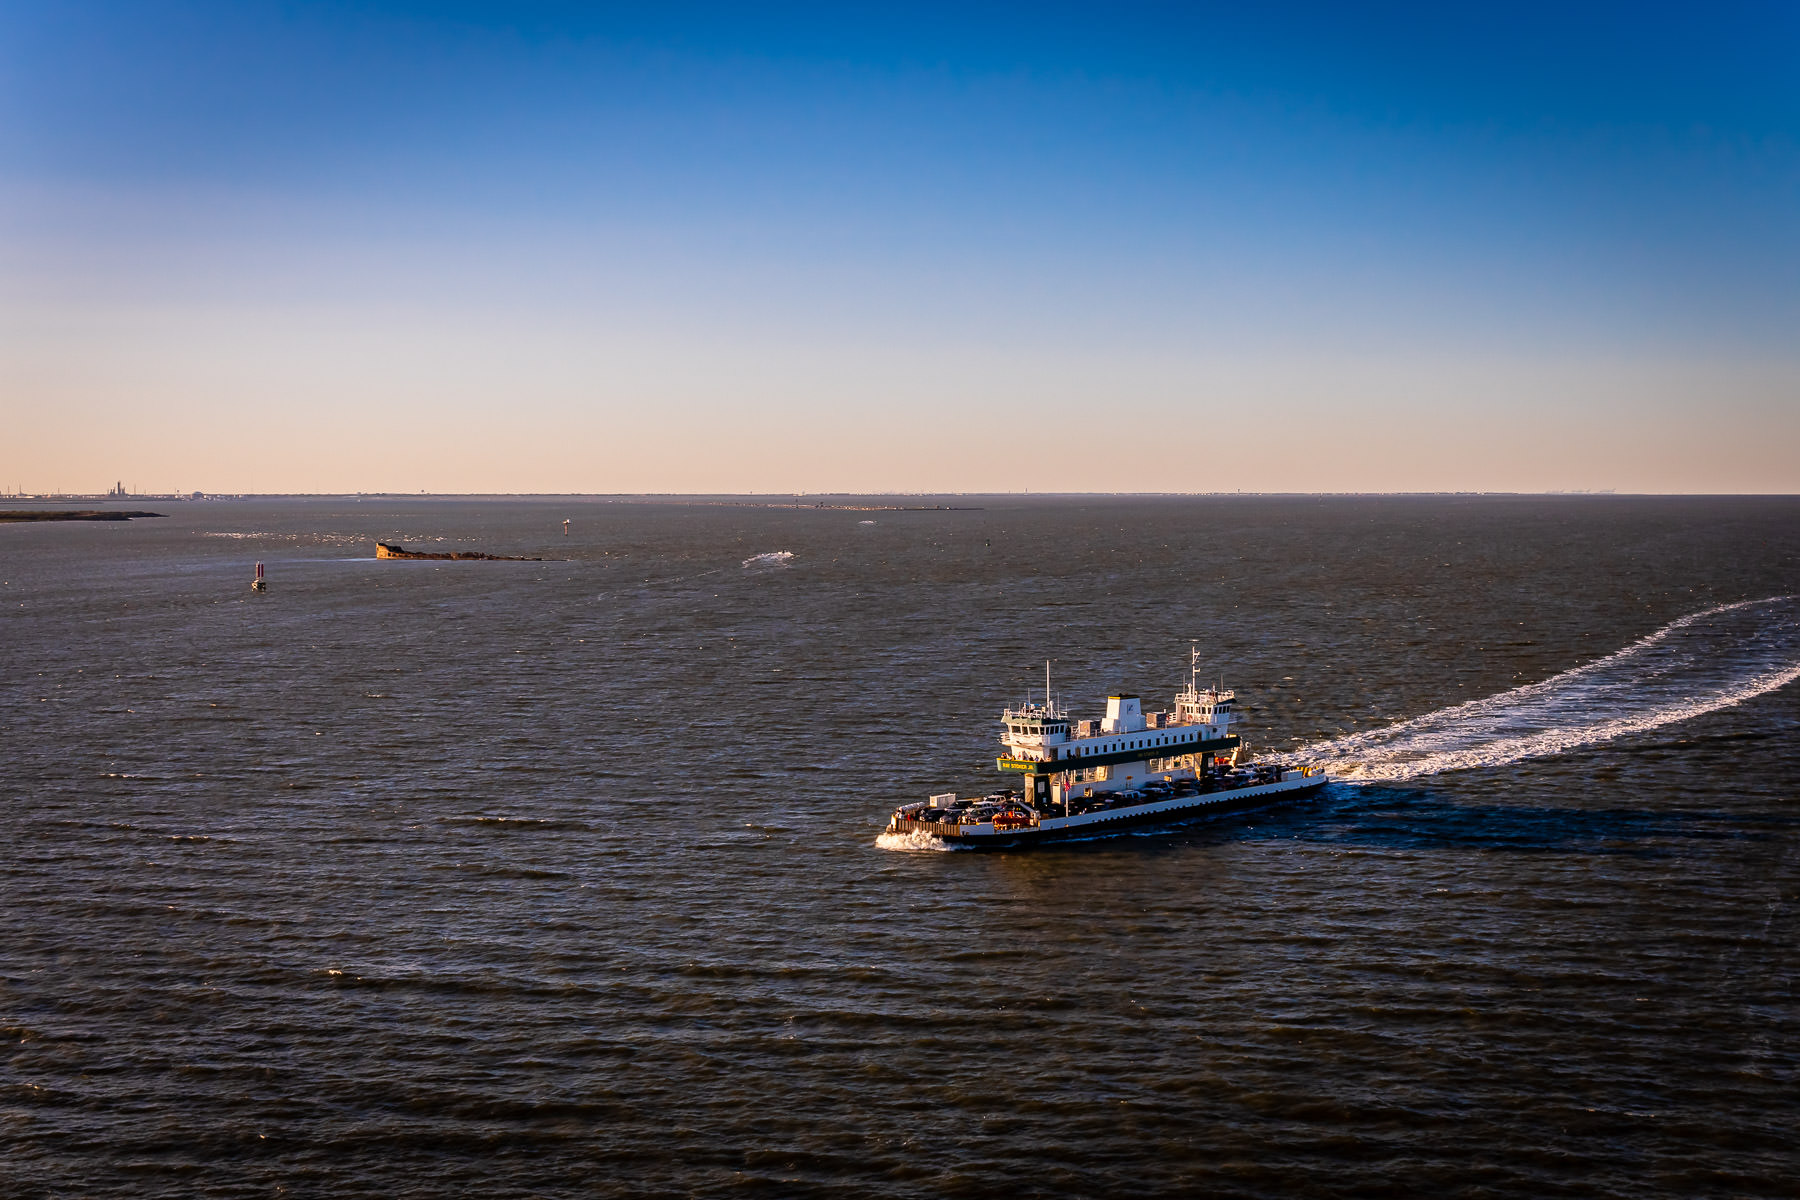 The ferryM/S Ray Stoker Jr.plies the waters between Galveston and Port Bolivar, Texas.